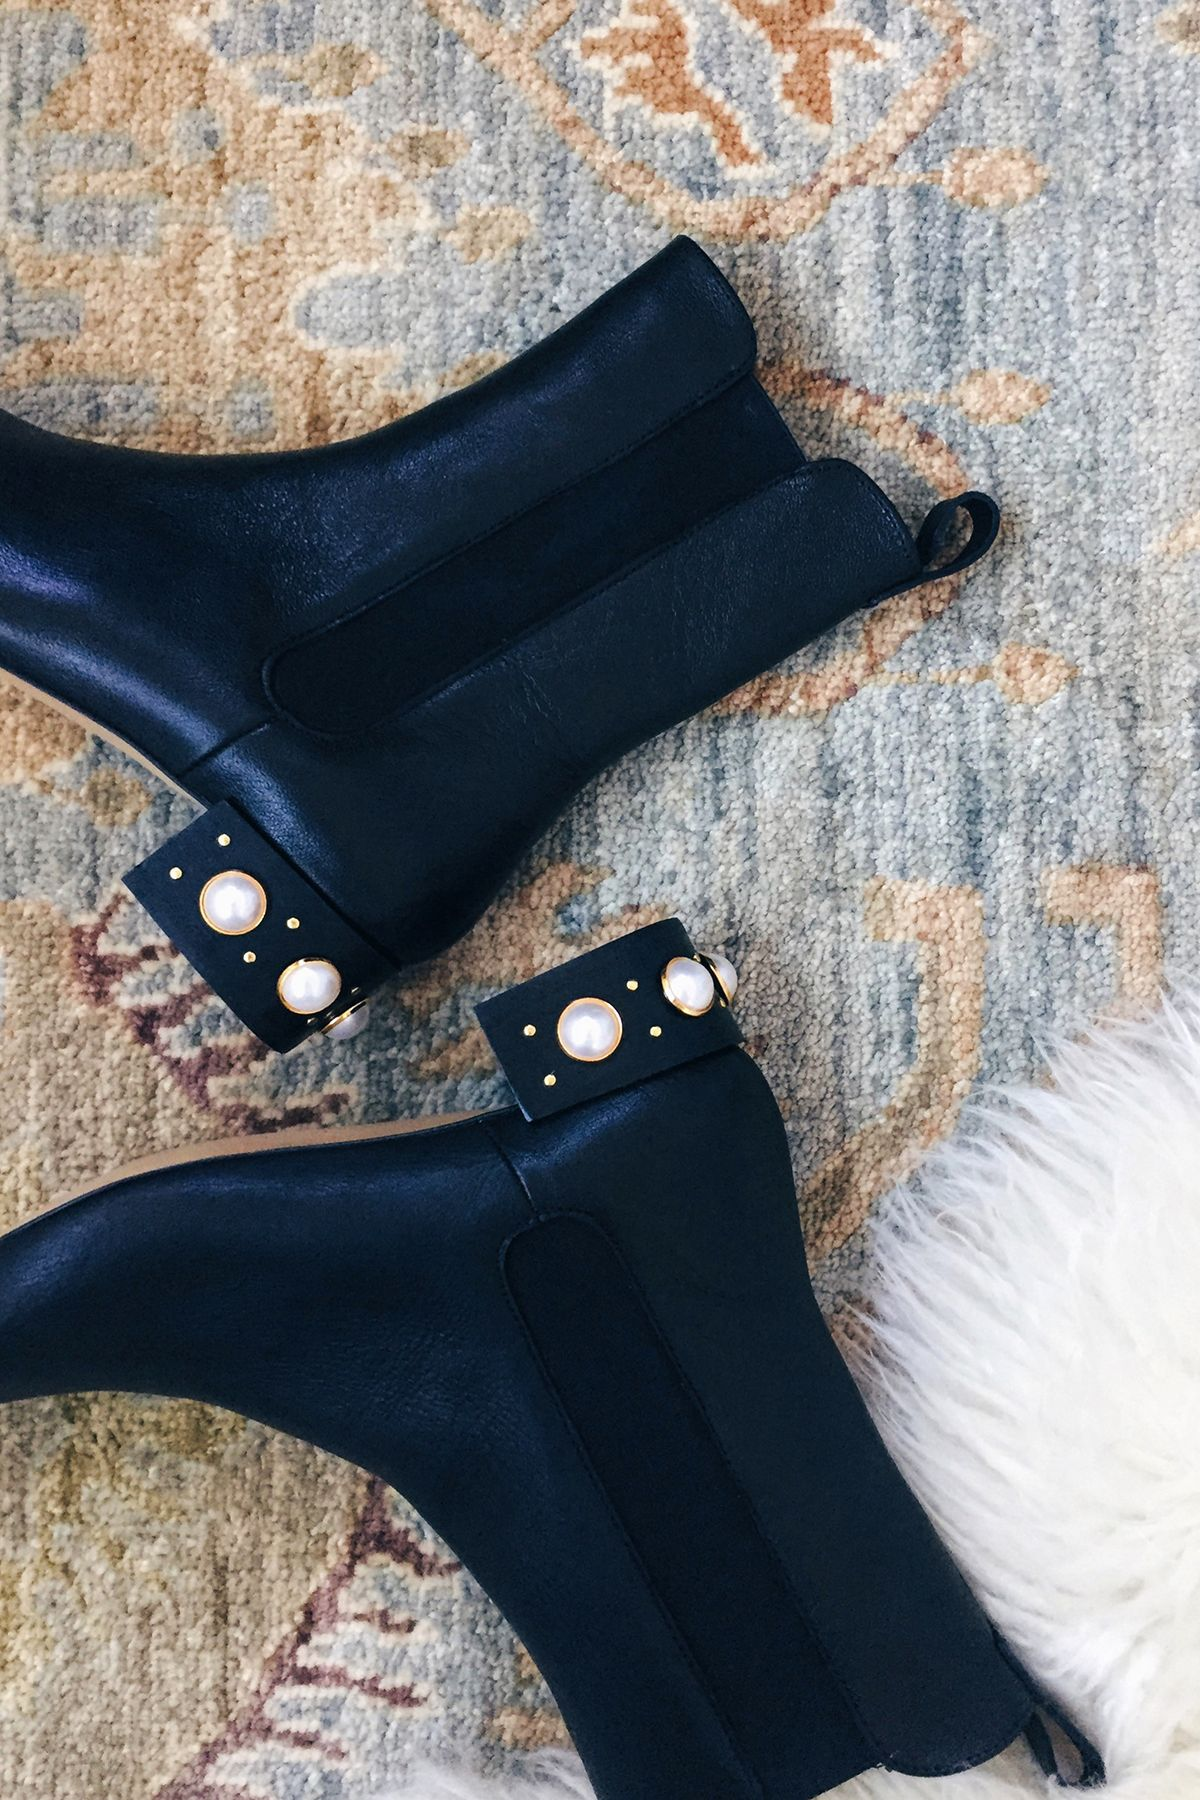 DIY Pearl Studded Boots 21 Super Easy Ways